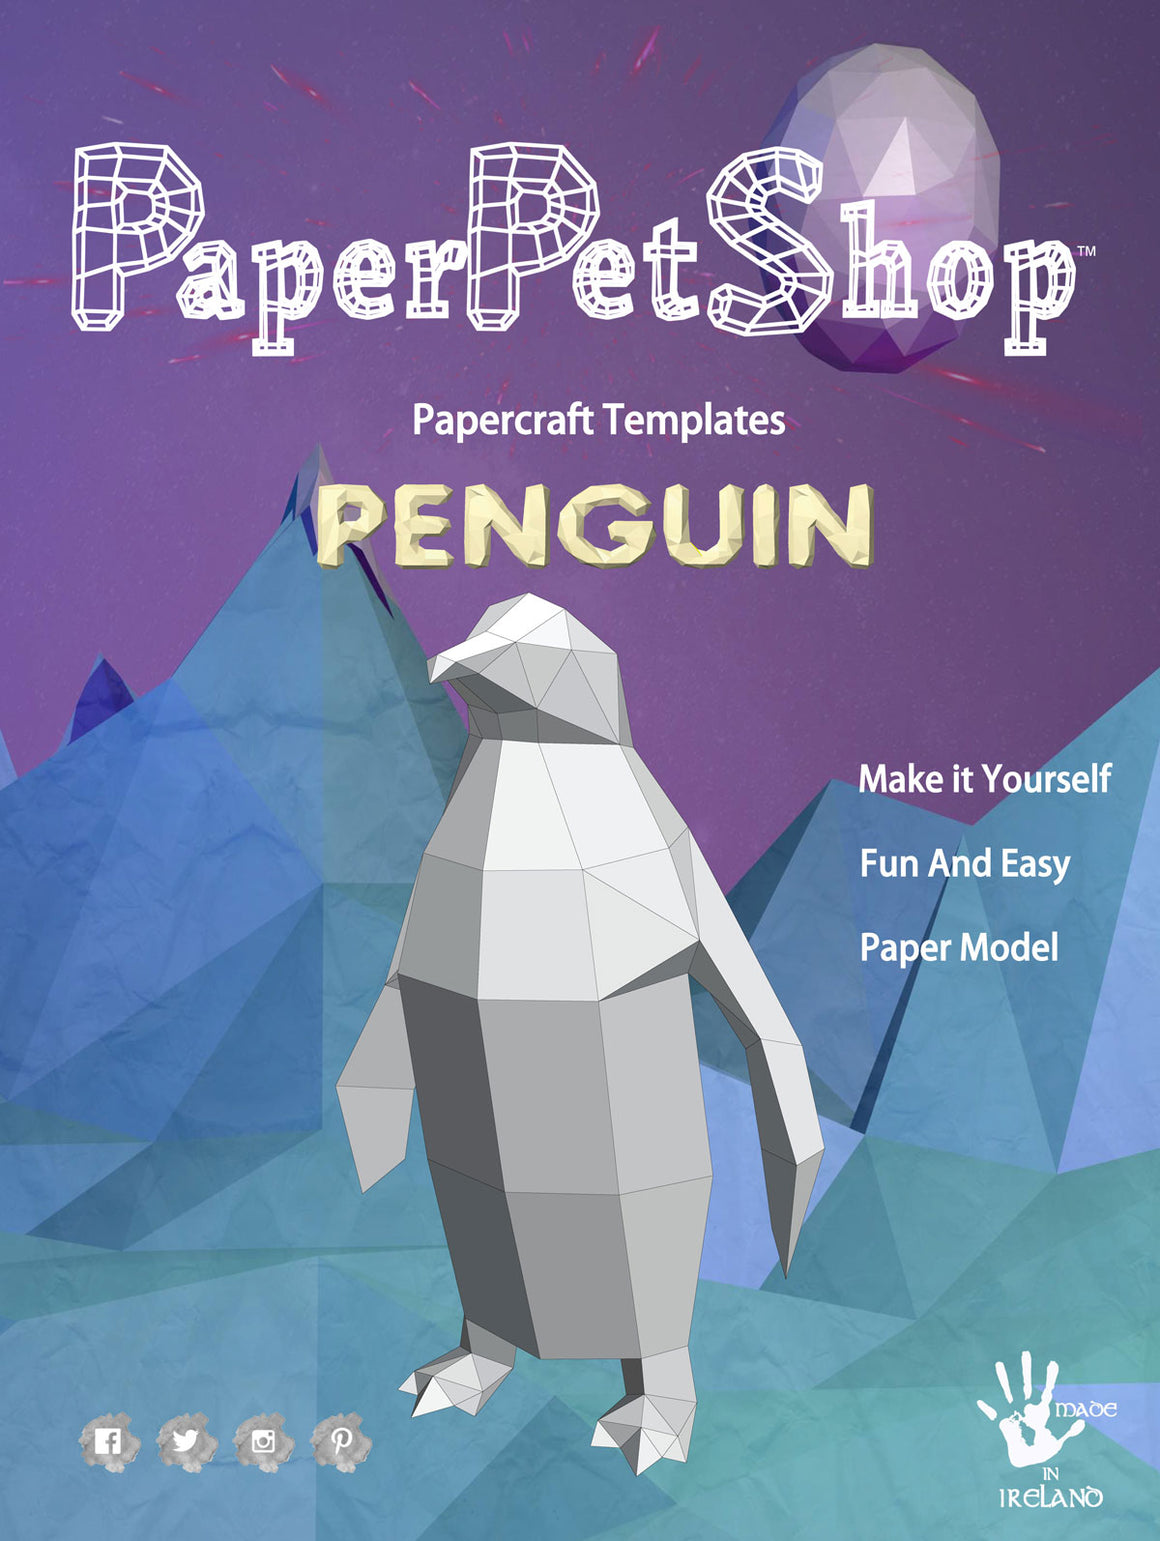 Papercraft Penguin gift